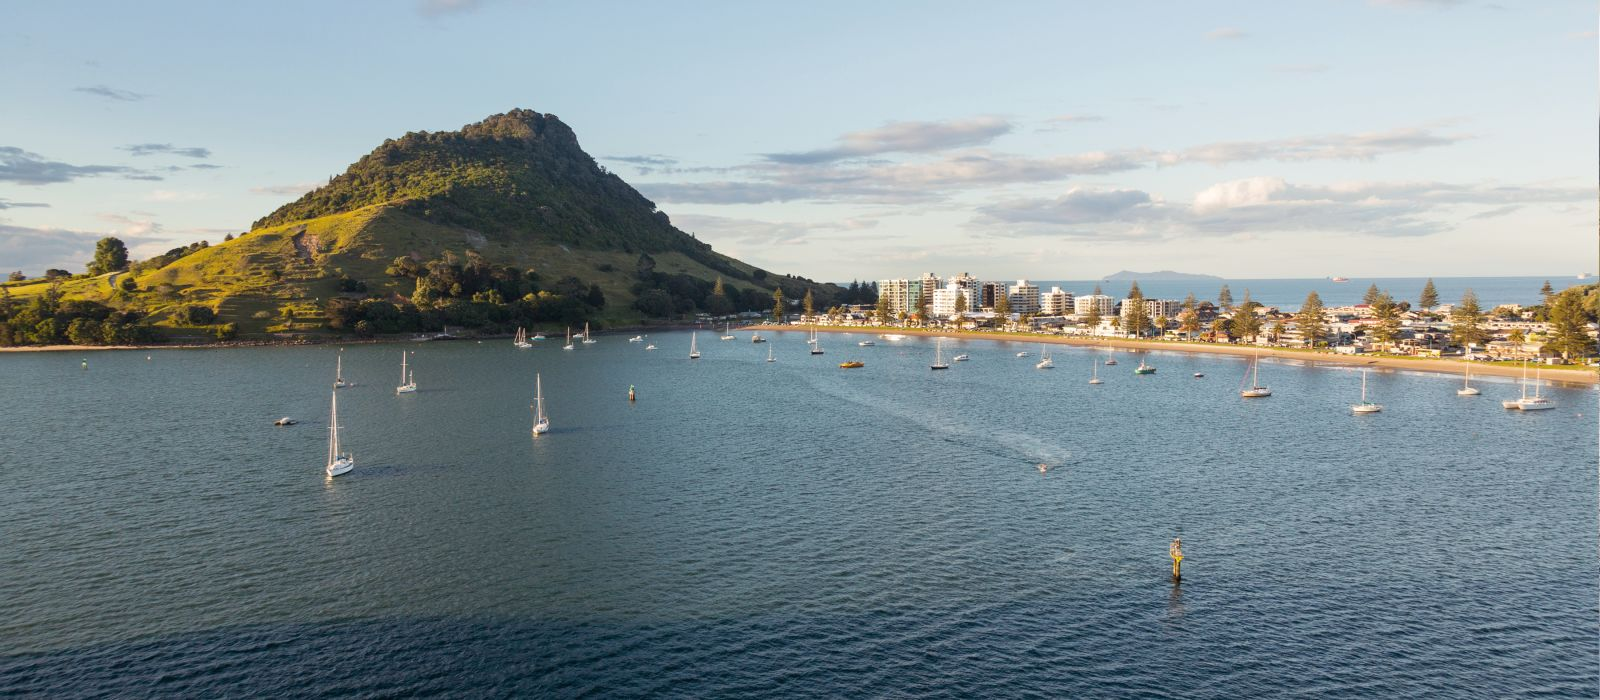 Tauranga, New Zealand, the city surrounded by water